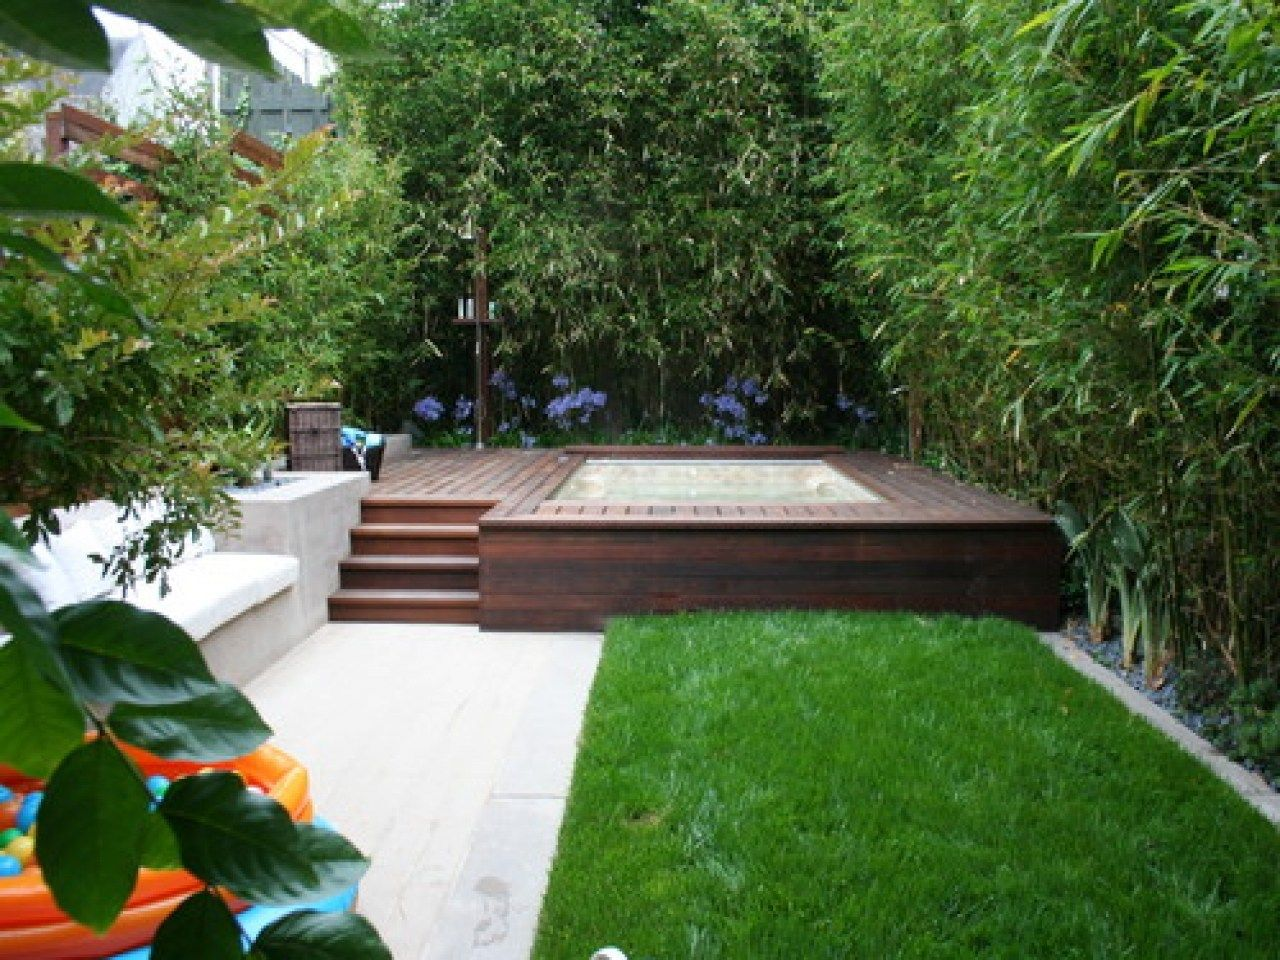 Stupendous Backyard Landscaping Ideas With Jacuzzi Hot Tub Backyard Relaxing Backyard Hot Tub Outdoor